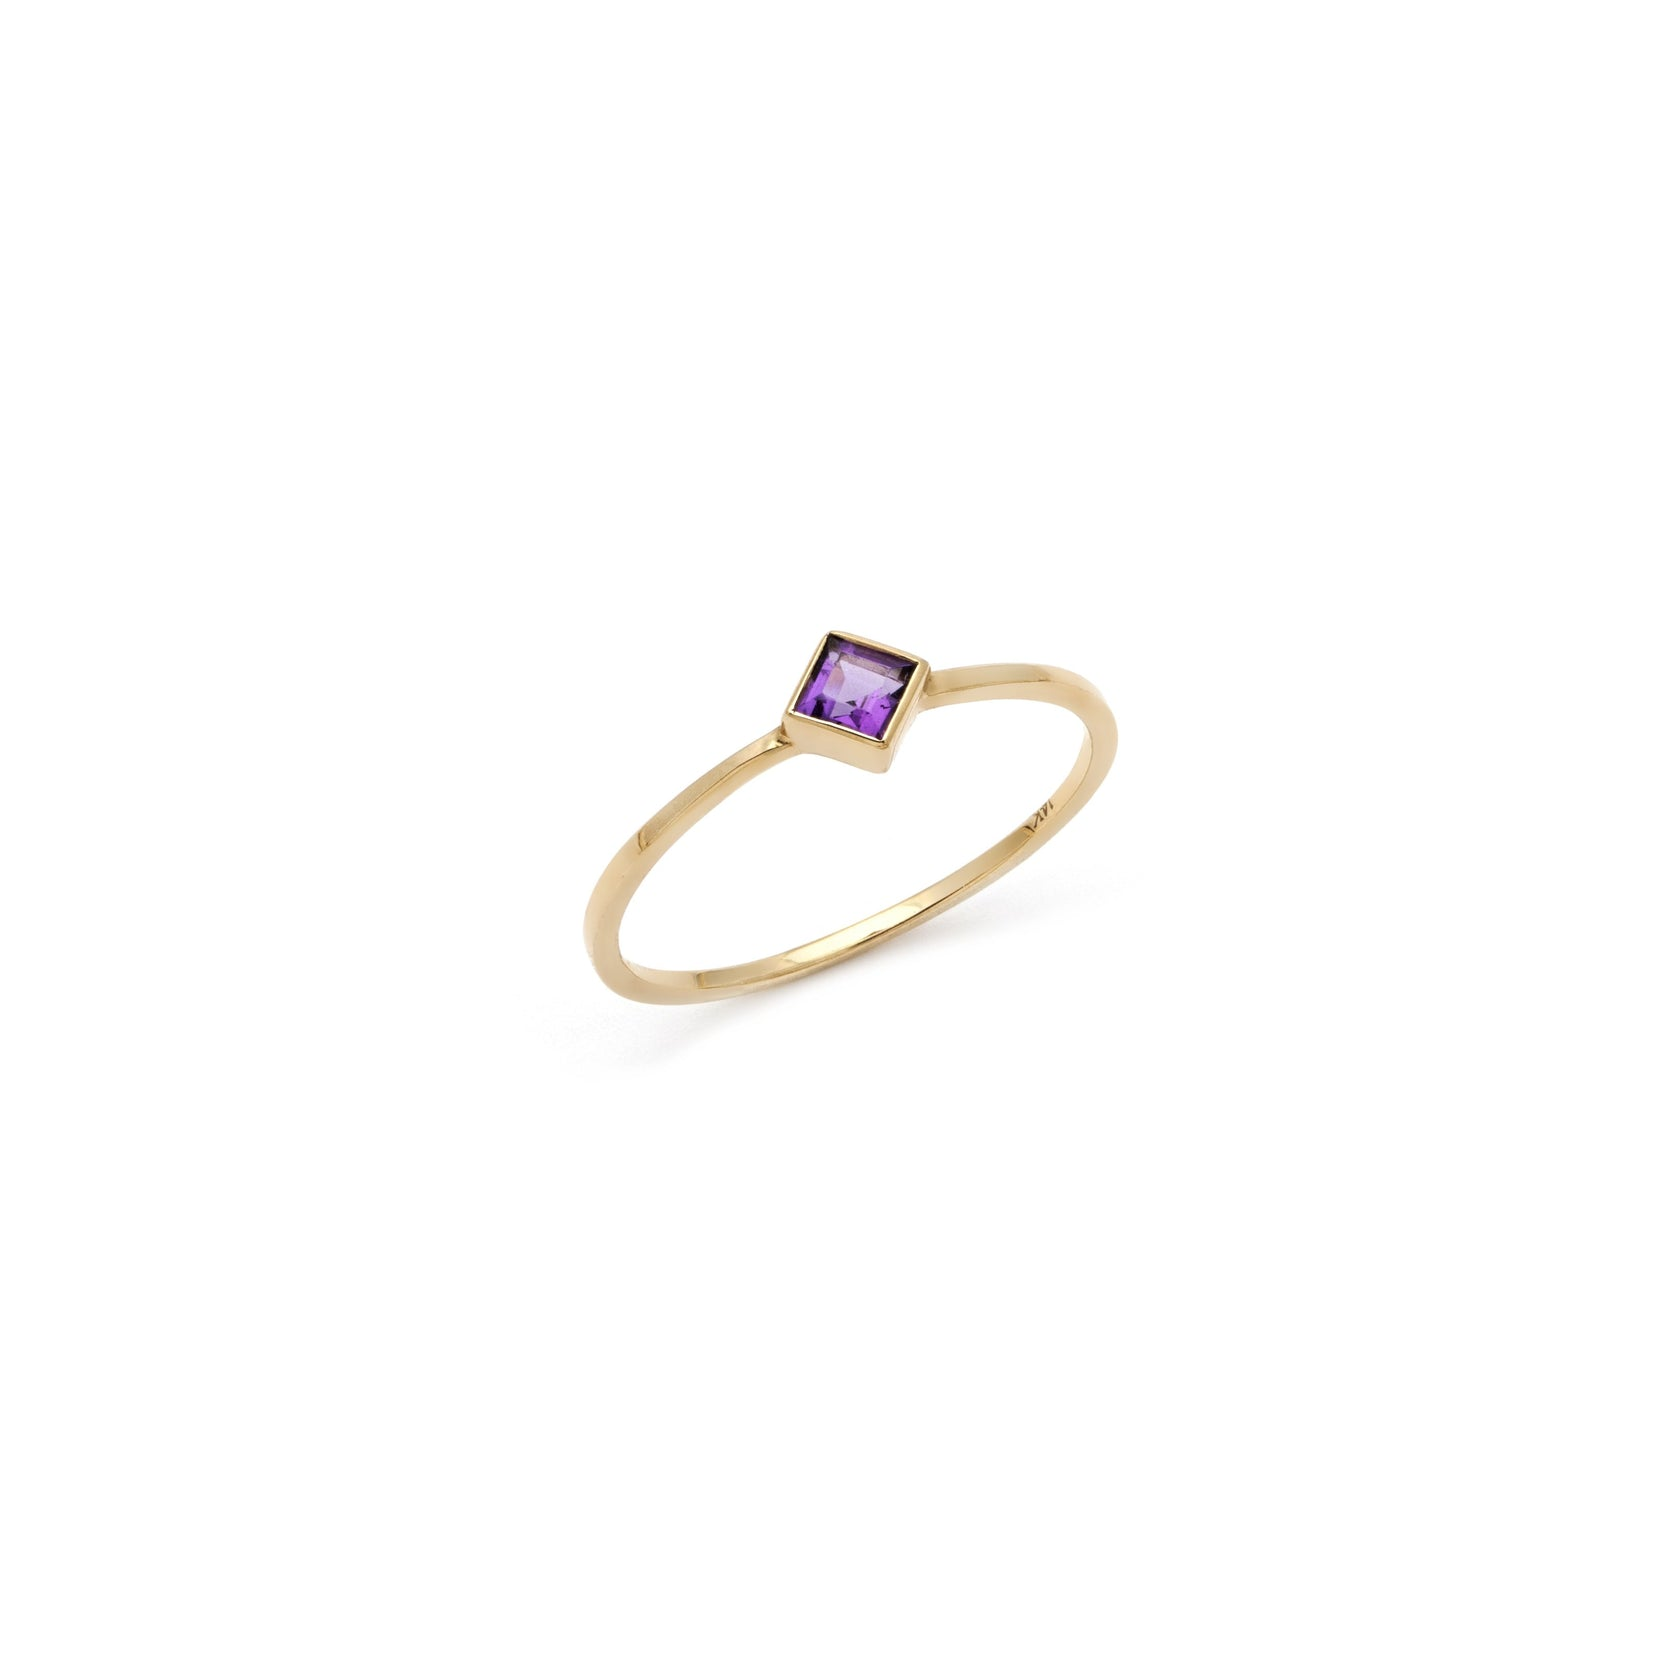 Coveted Amethyst Ring - 14k Solid Gold